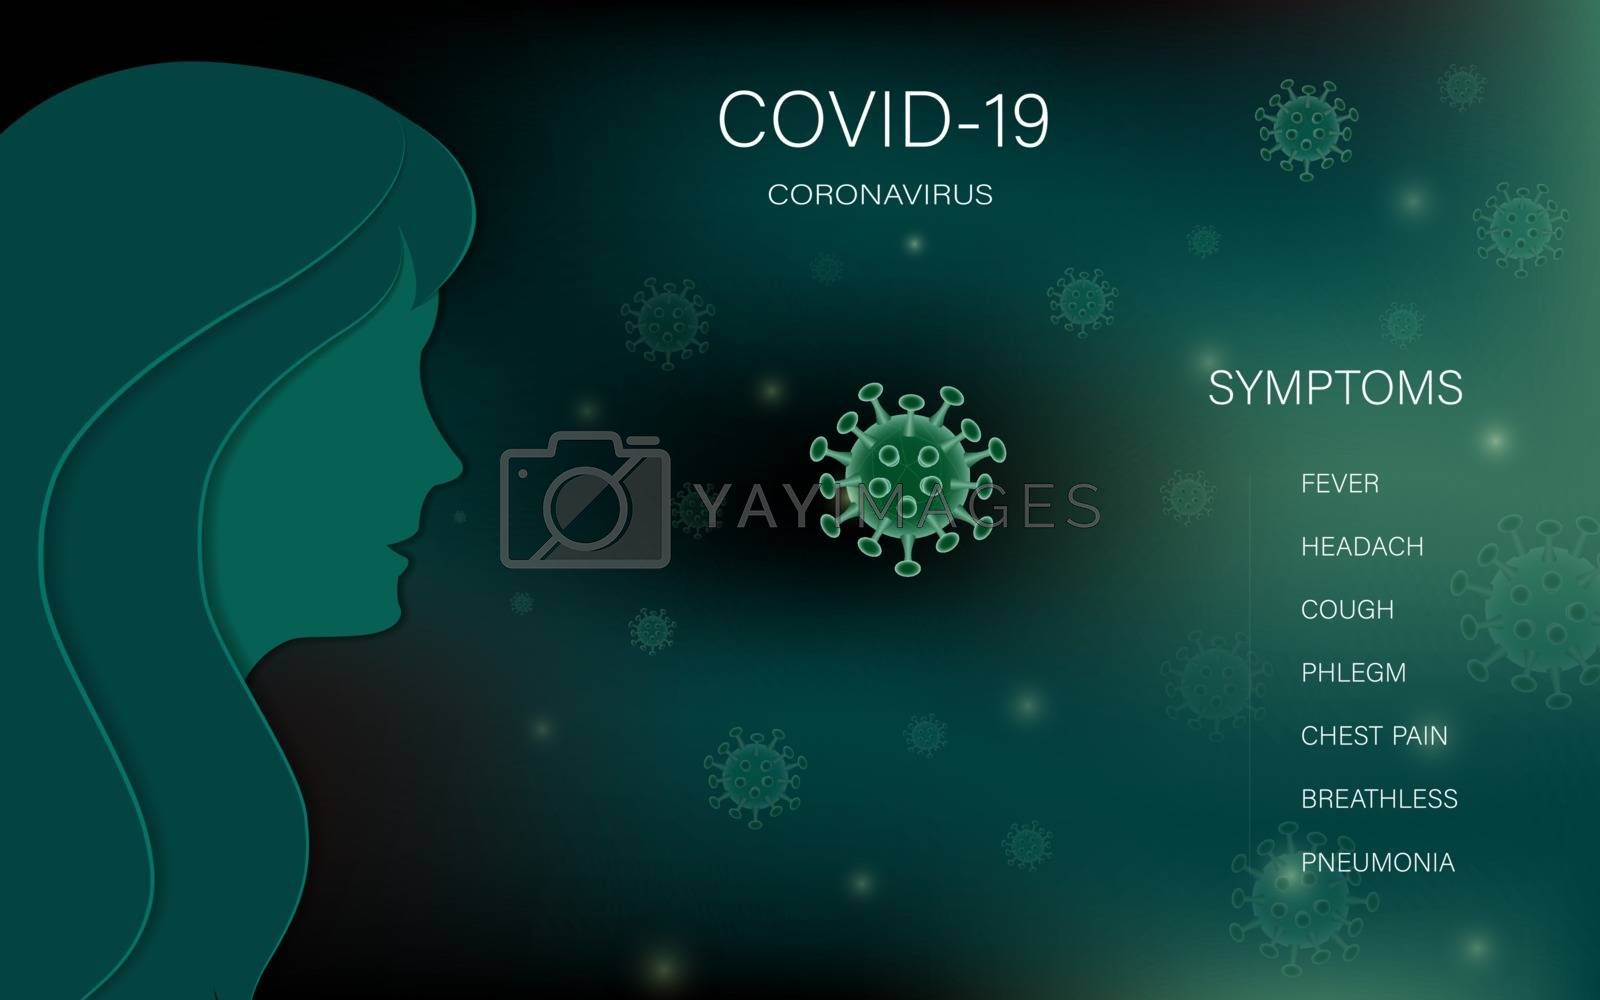 Covid-19 coronavirus outbreaking and pandemic medical health risk concept,vector illustration